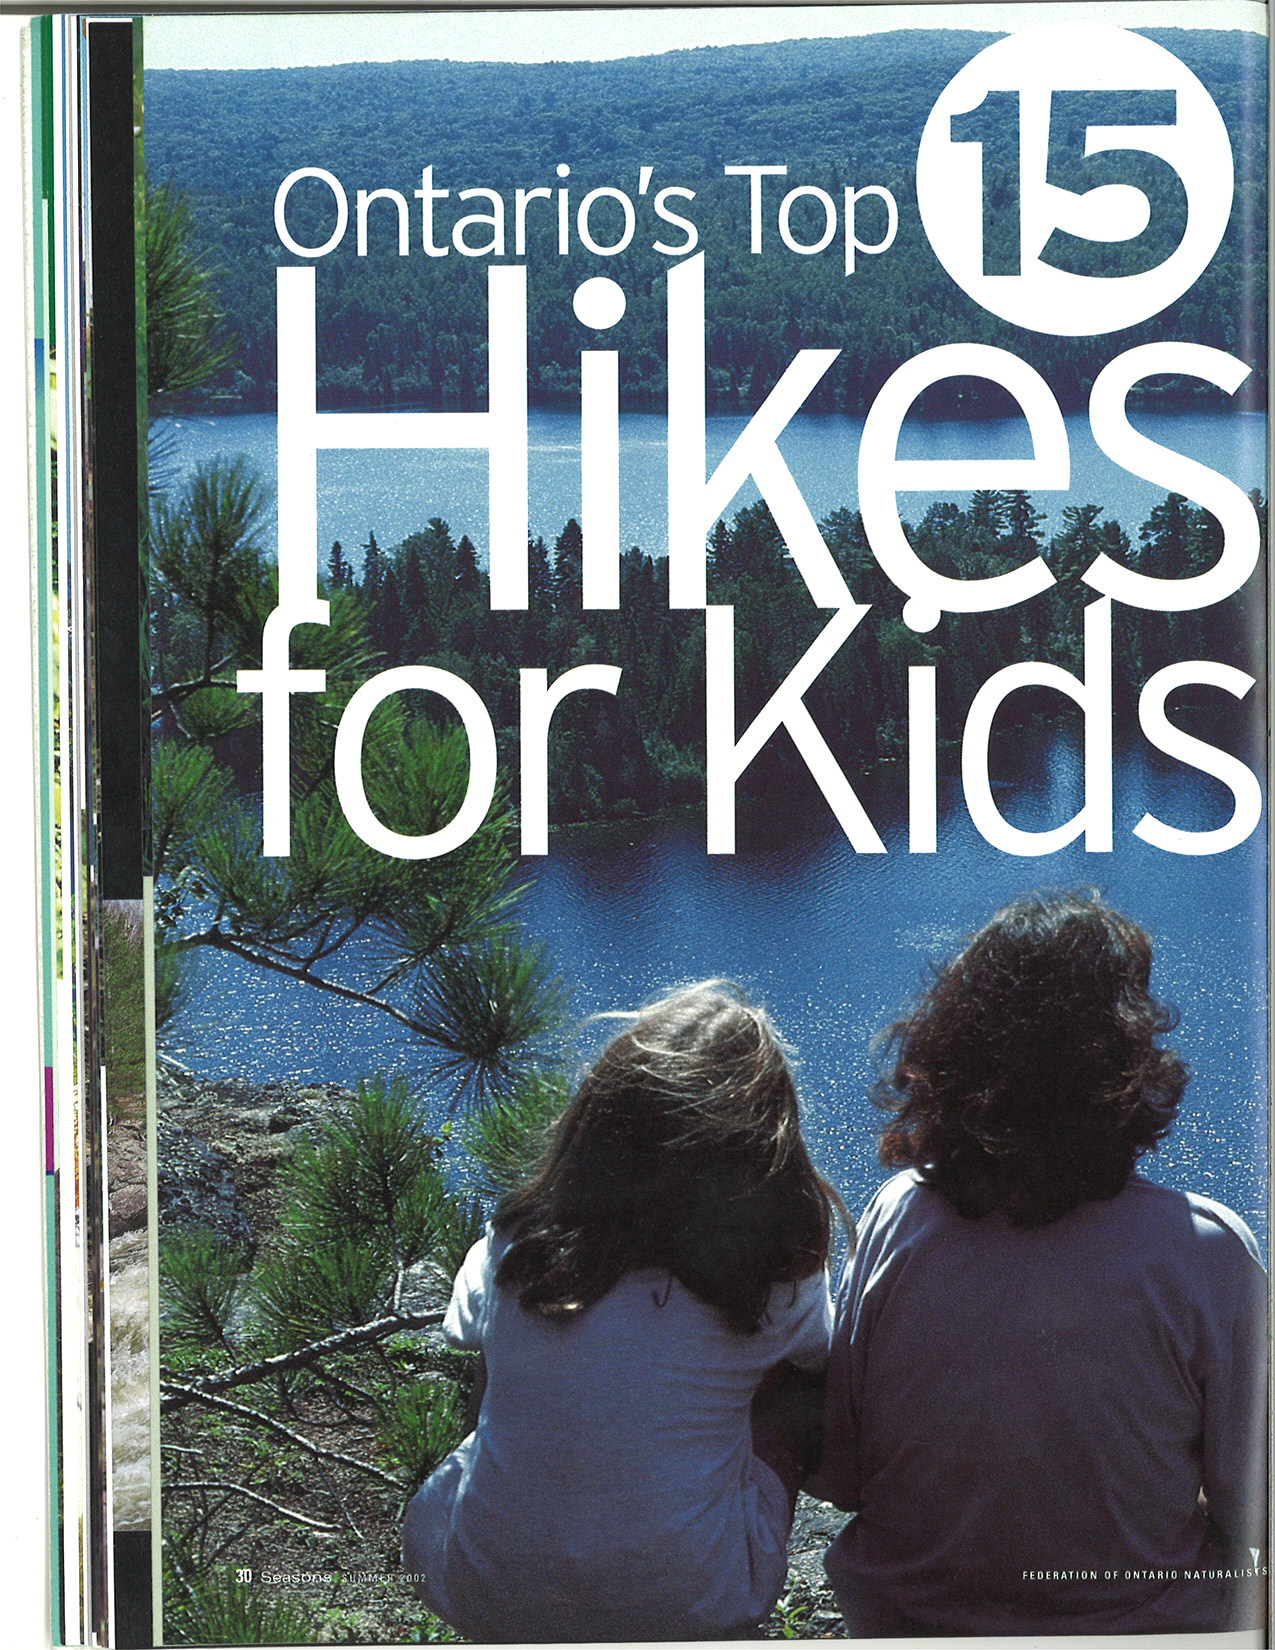 seasons_2002_v42_i2_f_ontarios_top_15_hikes_for_kids_30